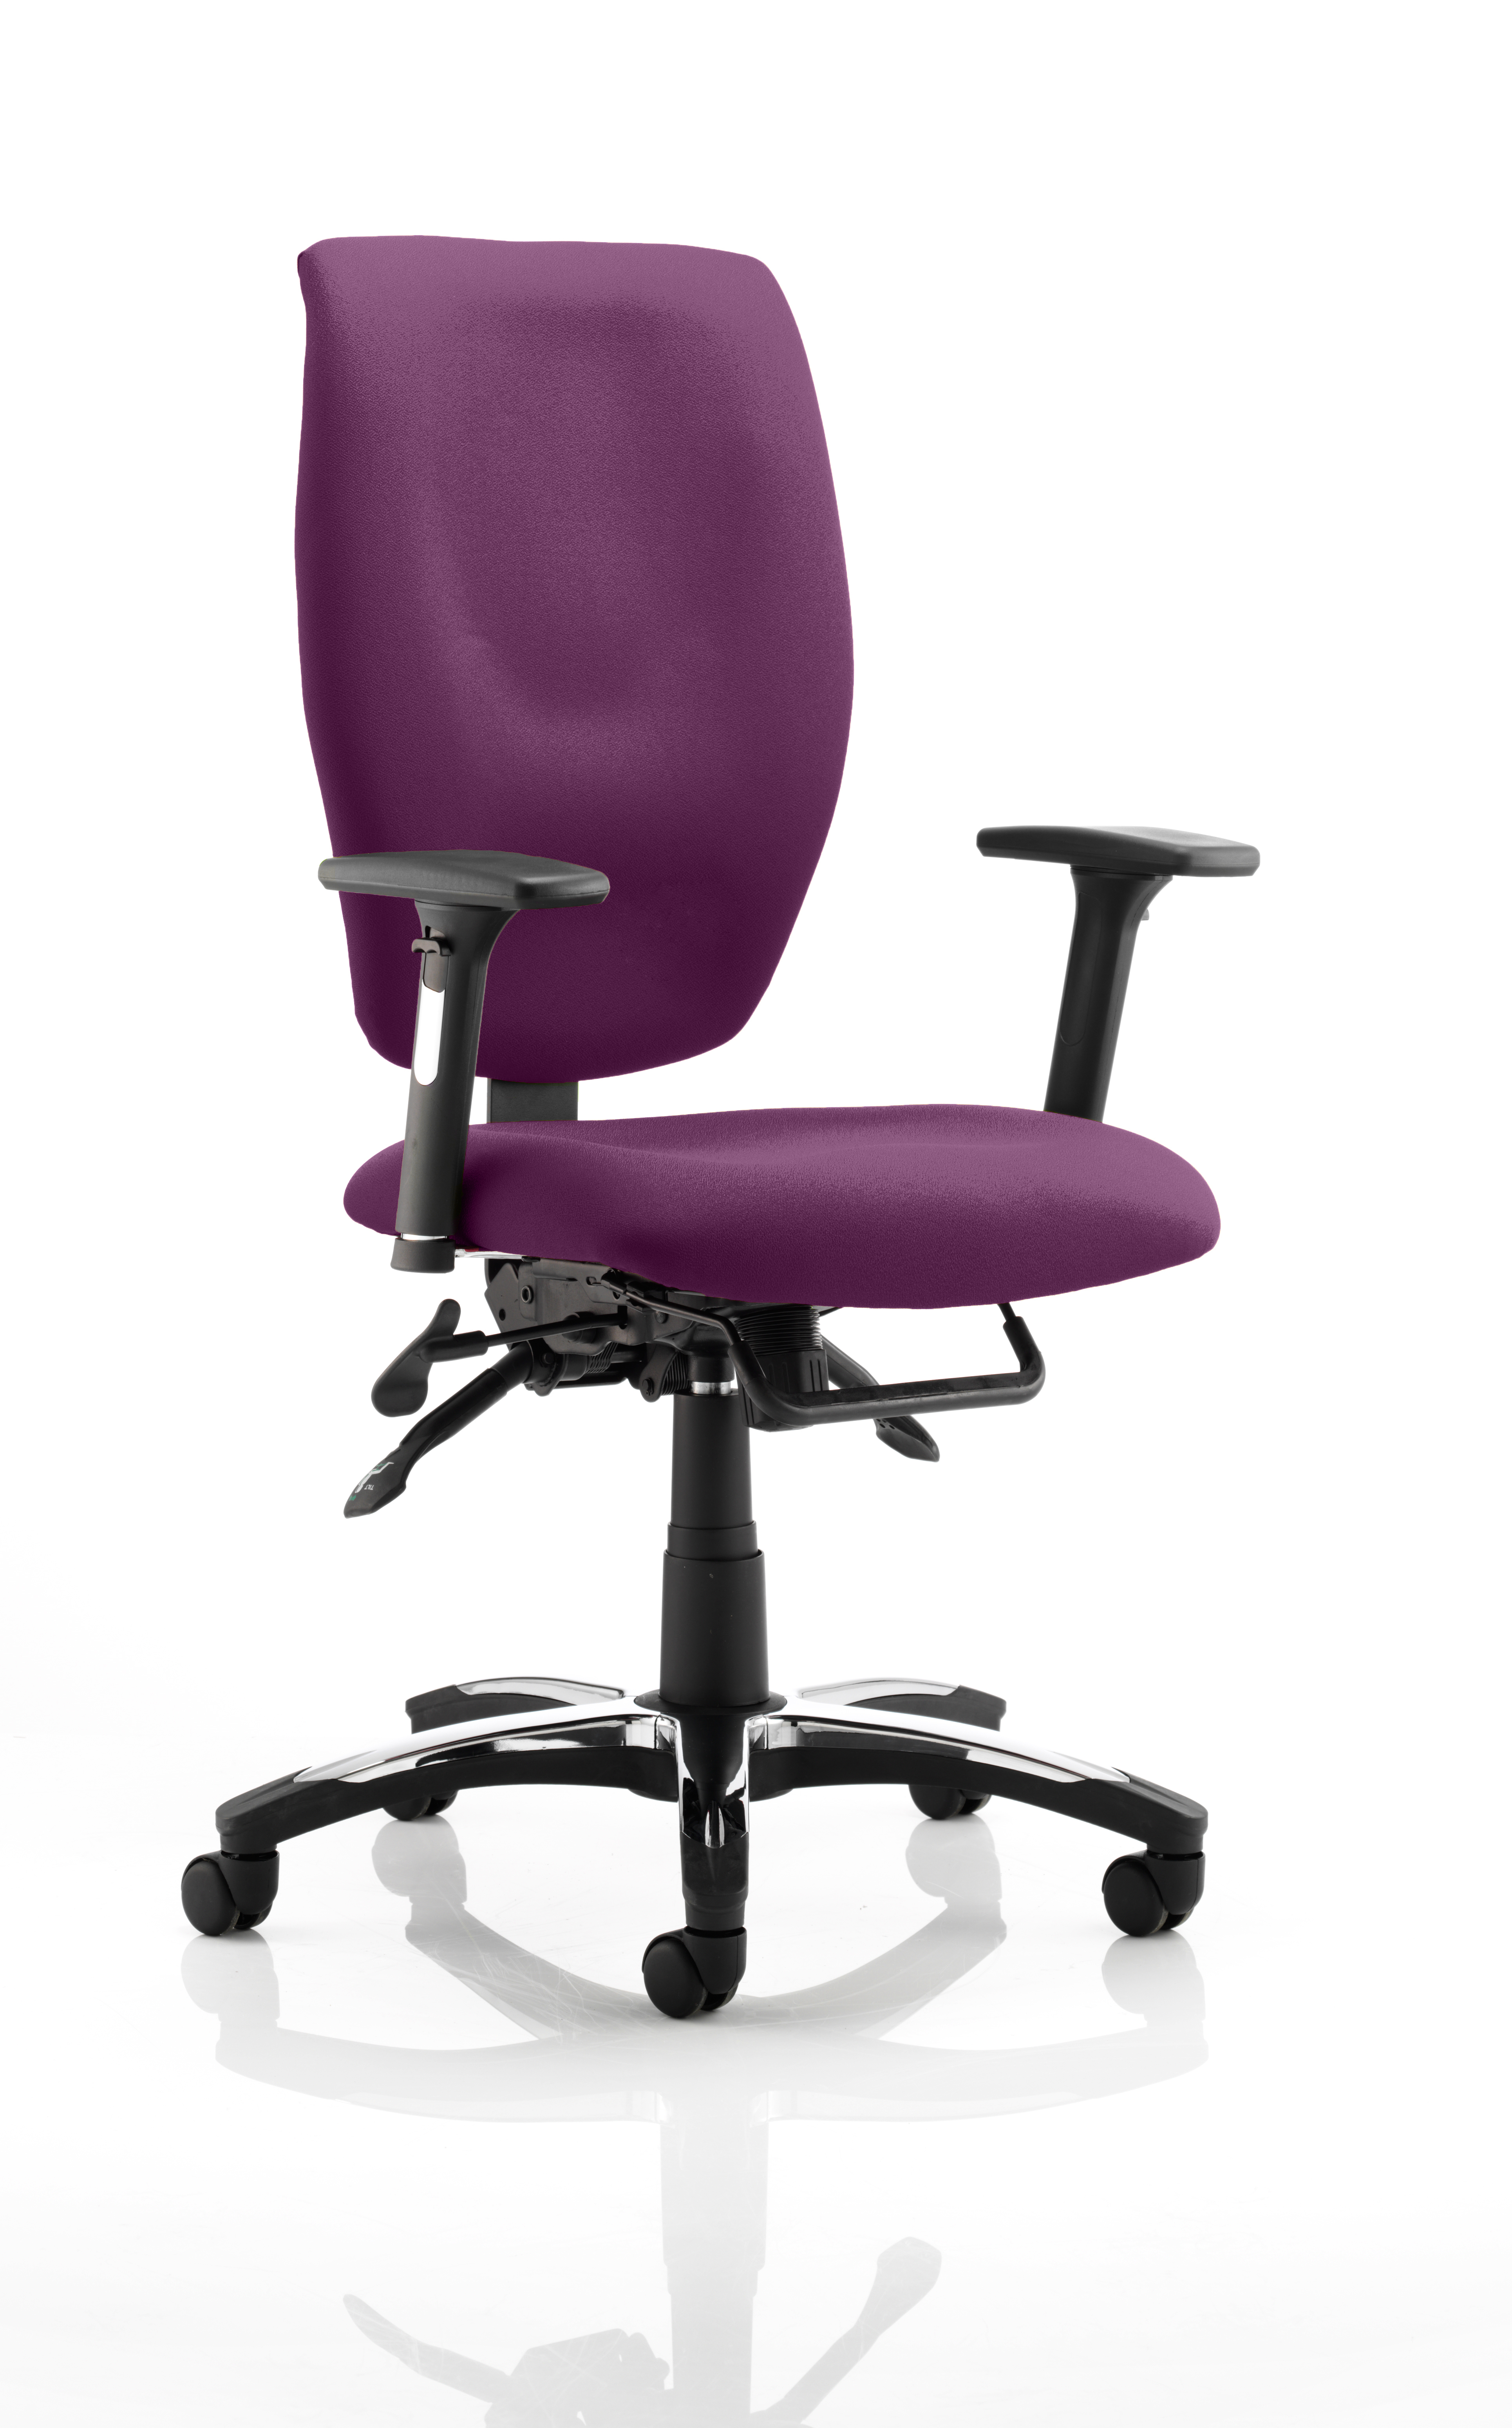 Sierra Executive Chair Black Fabric With Arms In Tansy Purple